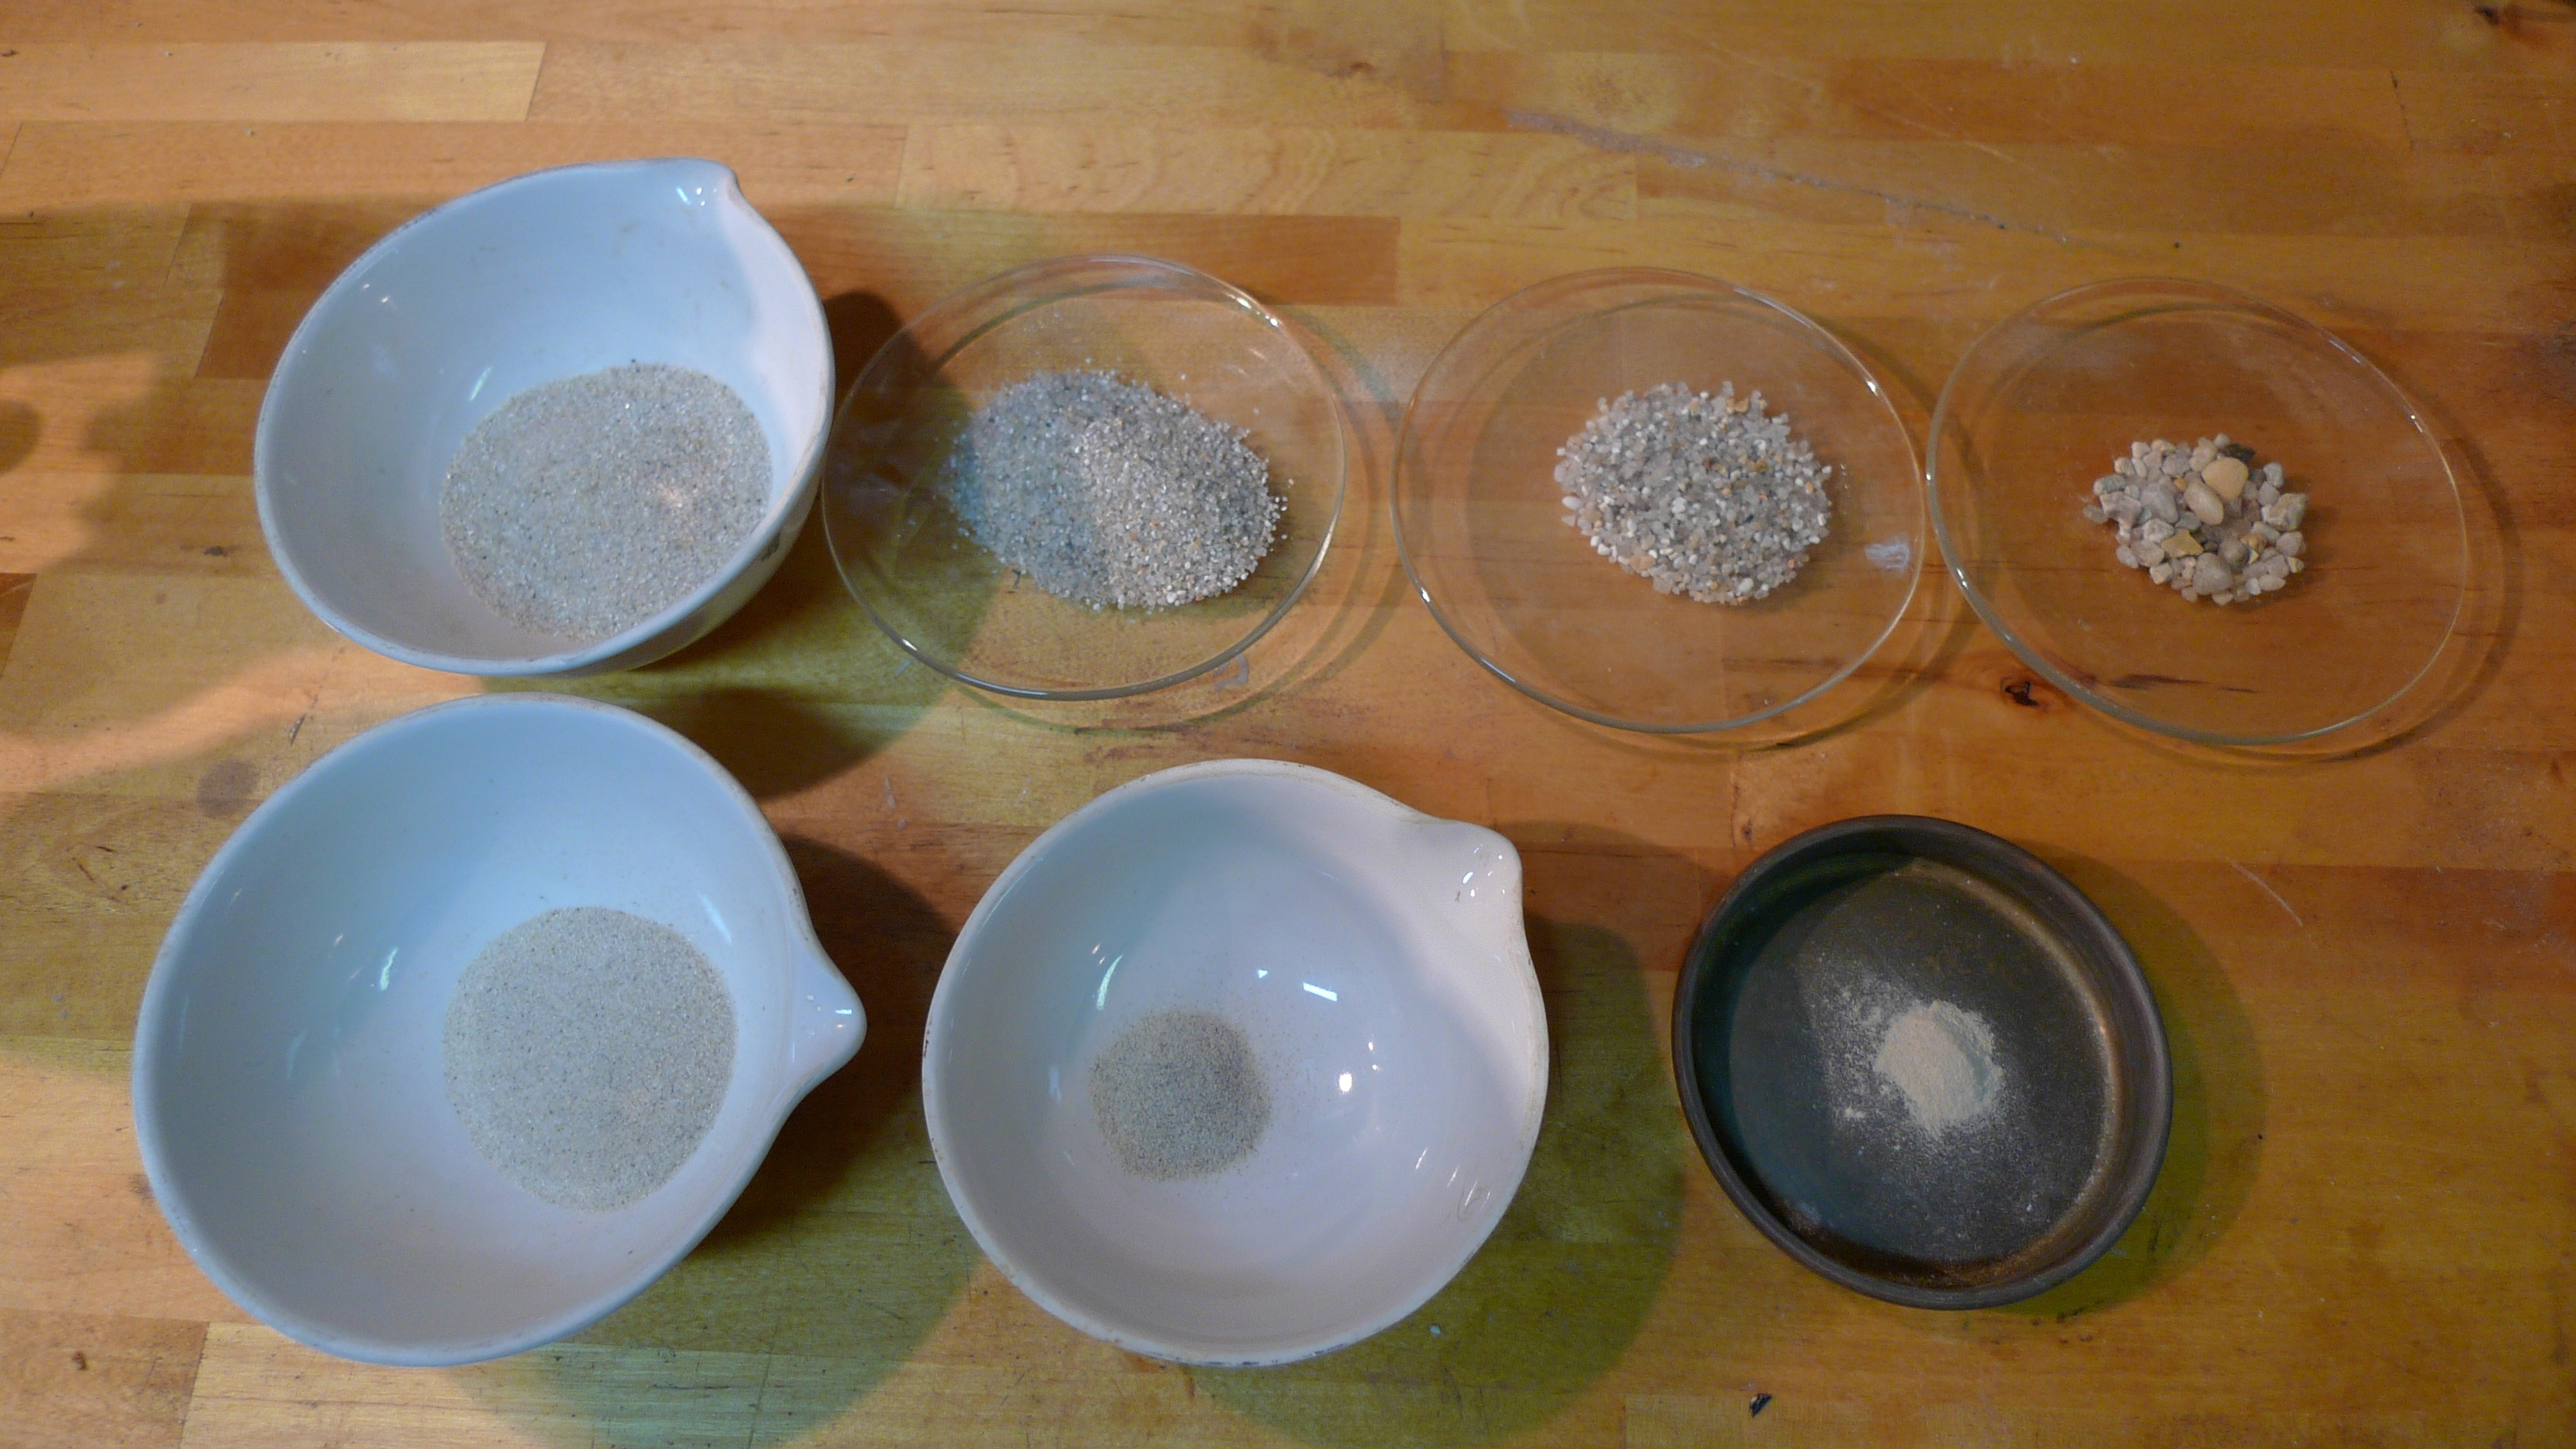 Setting the fractions from sieving out to allow visual comparison of the ratios is sometimes the easiest way to assess the sand and its graph